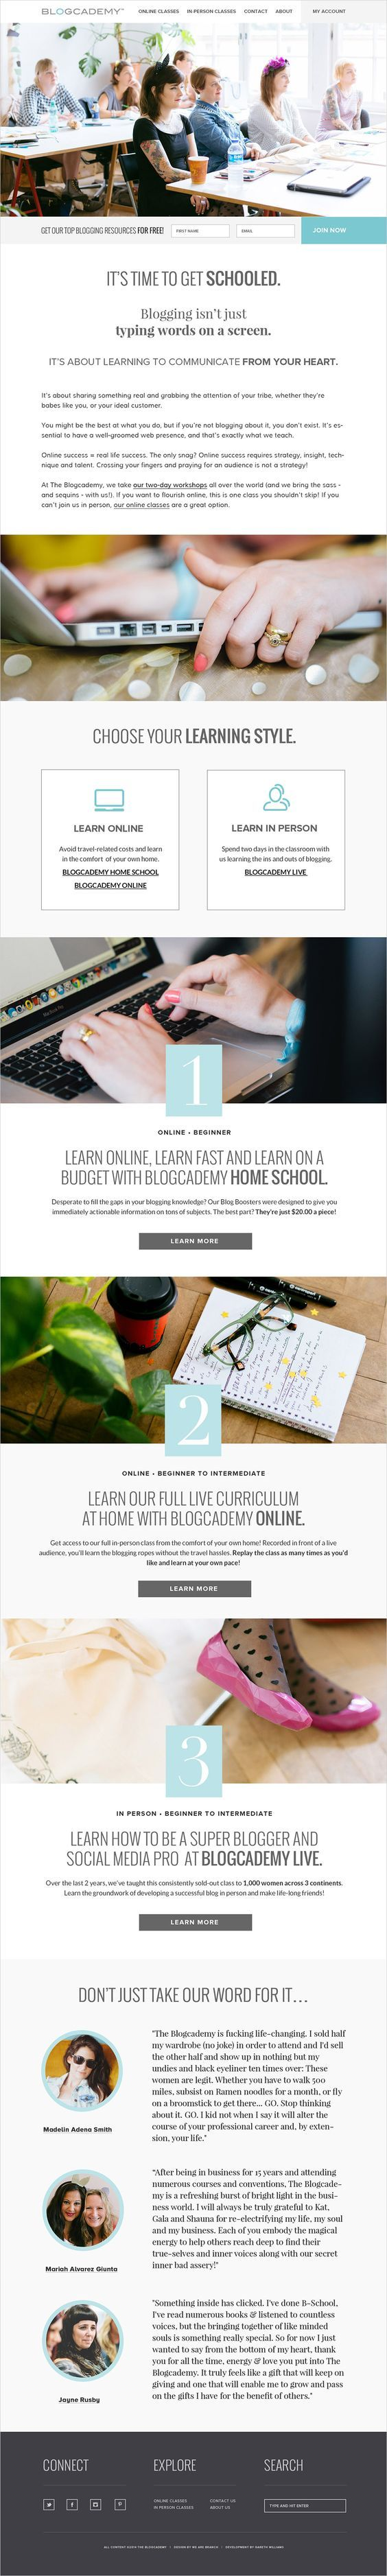 20 best sales page design images on Pinterest | Design websites ...